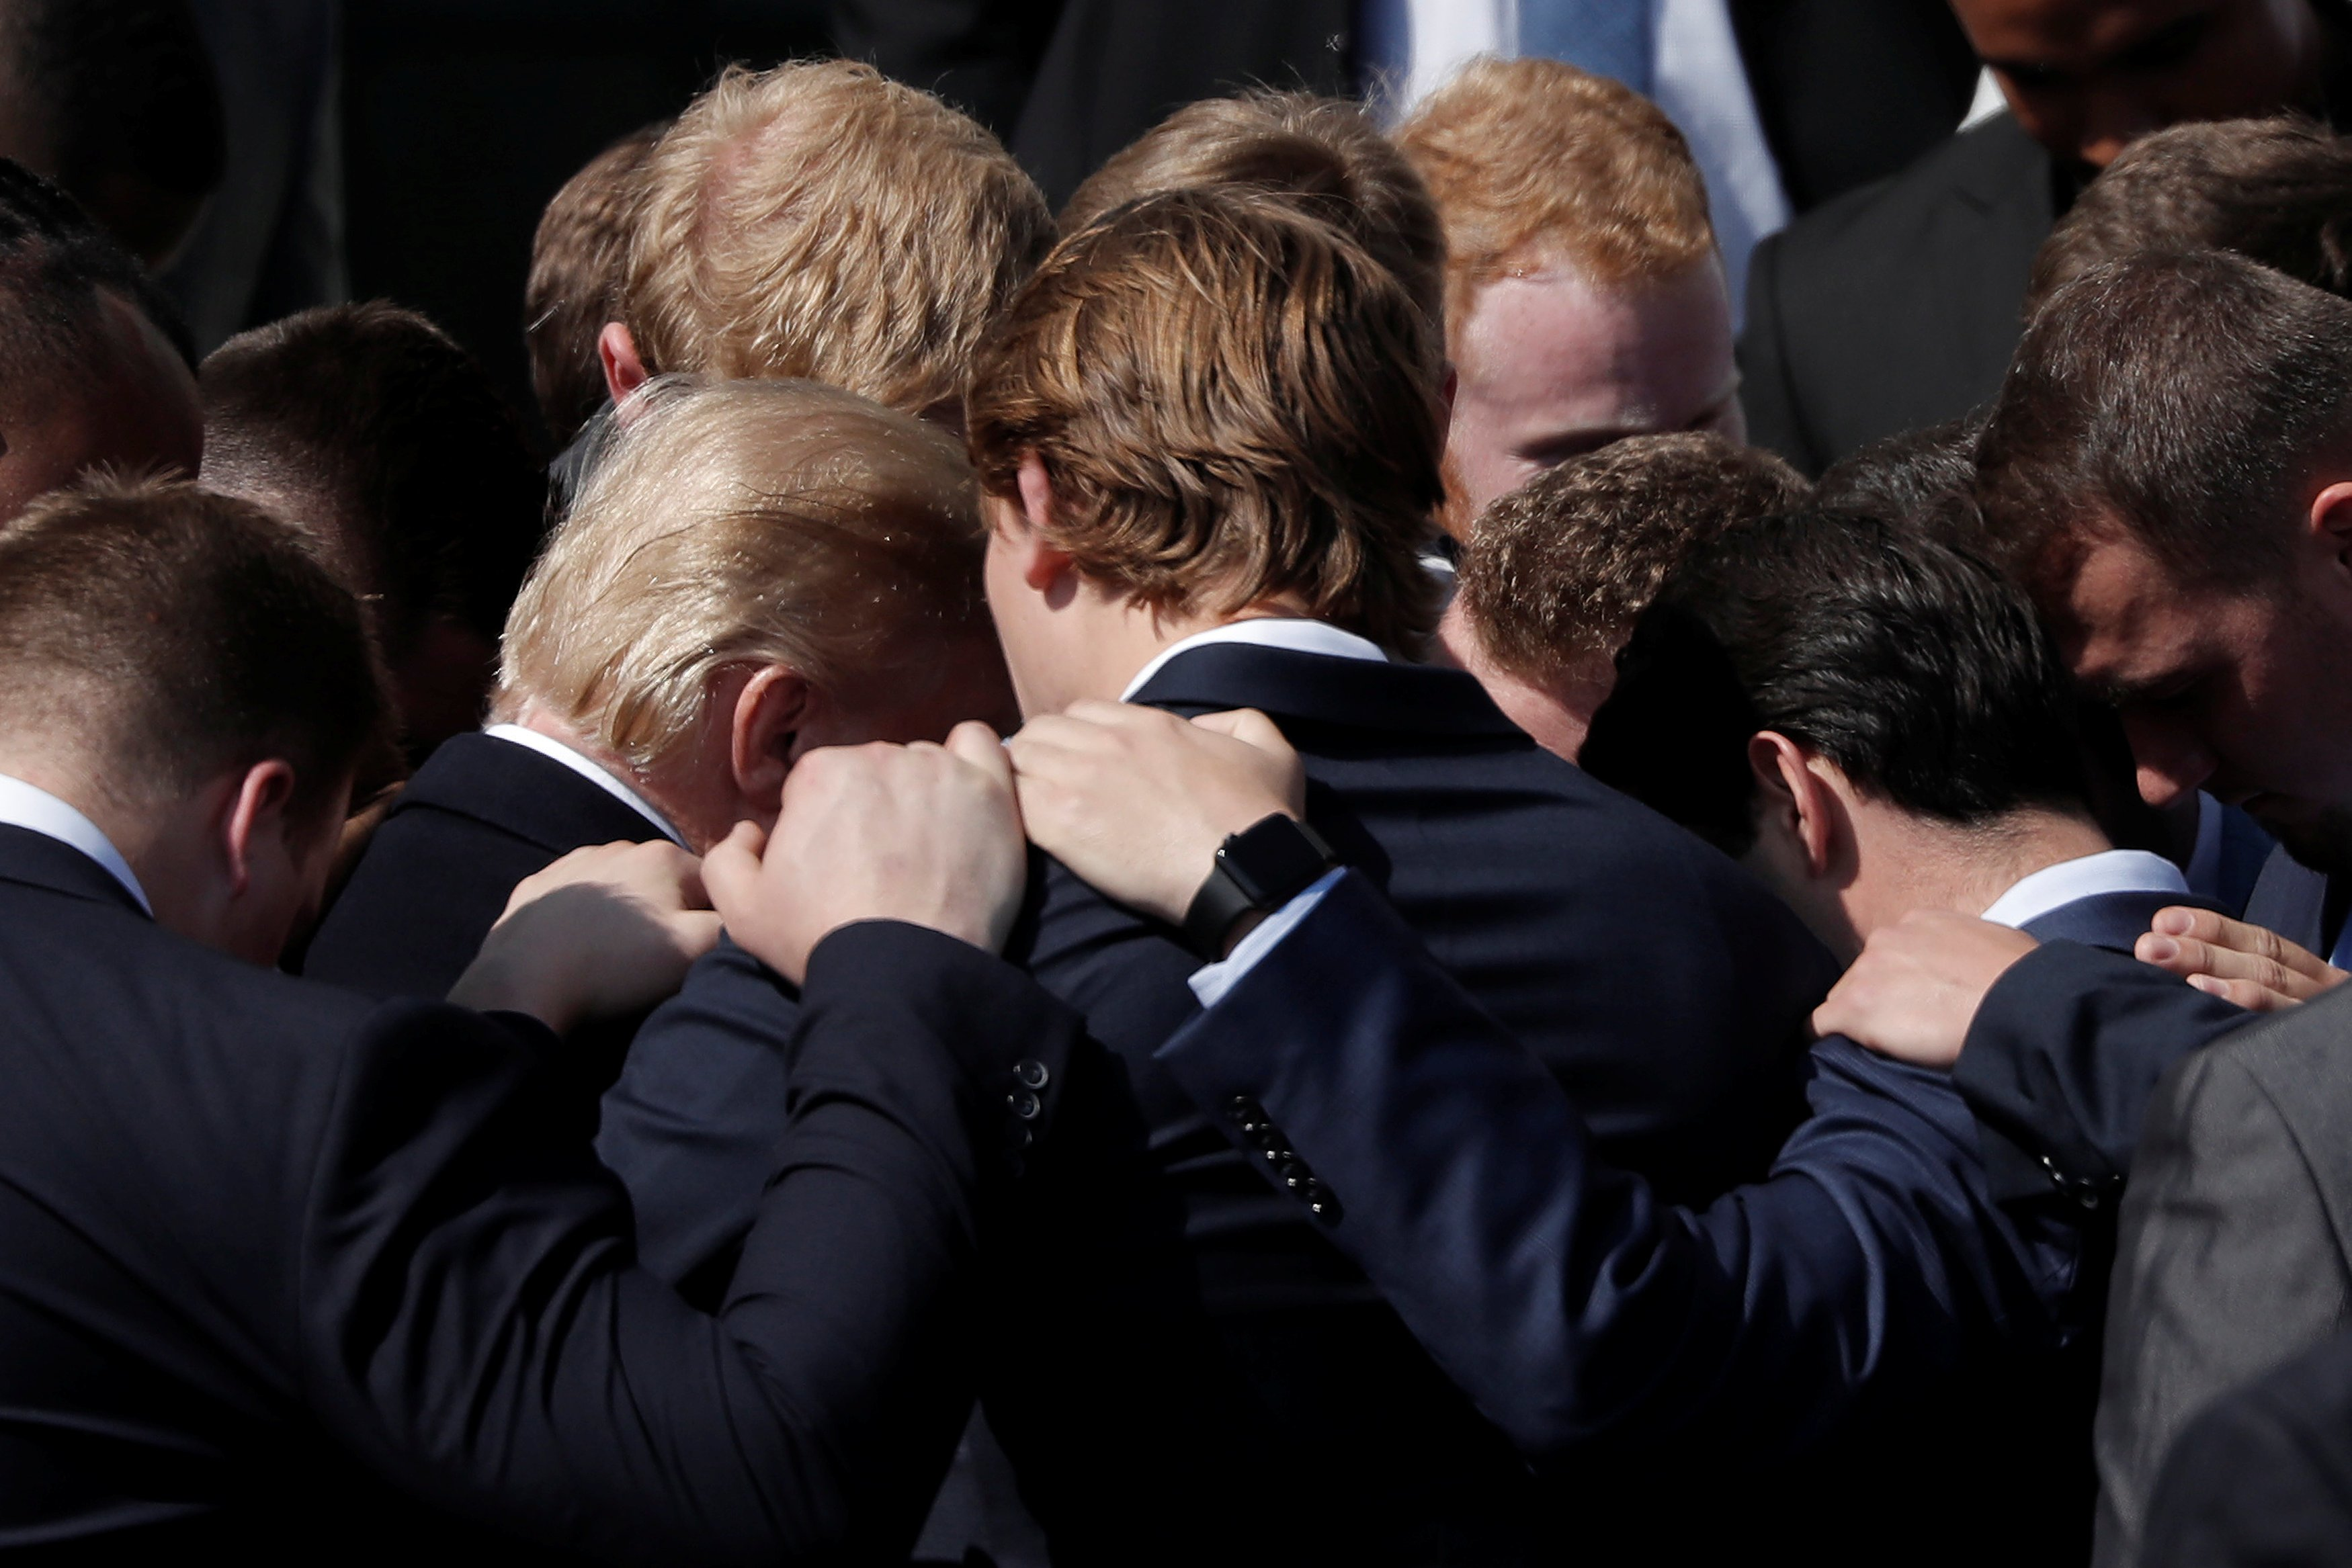 U.S. President Donald Trump prays with team members of the 2017 NCAA Football National Champions, The Alabama Crimson Tide during an event hosted at the South Lawn of the White House in Washington